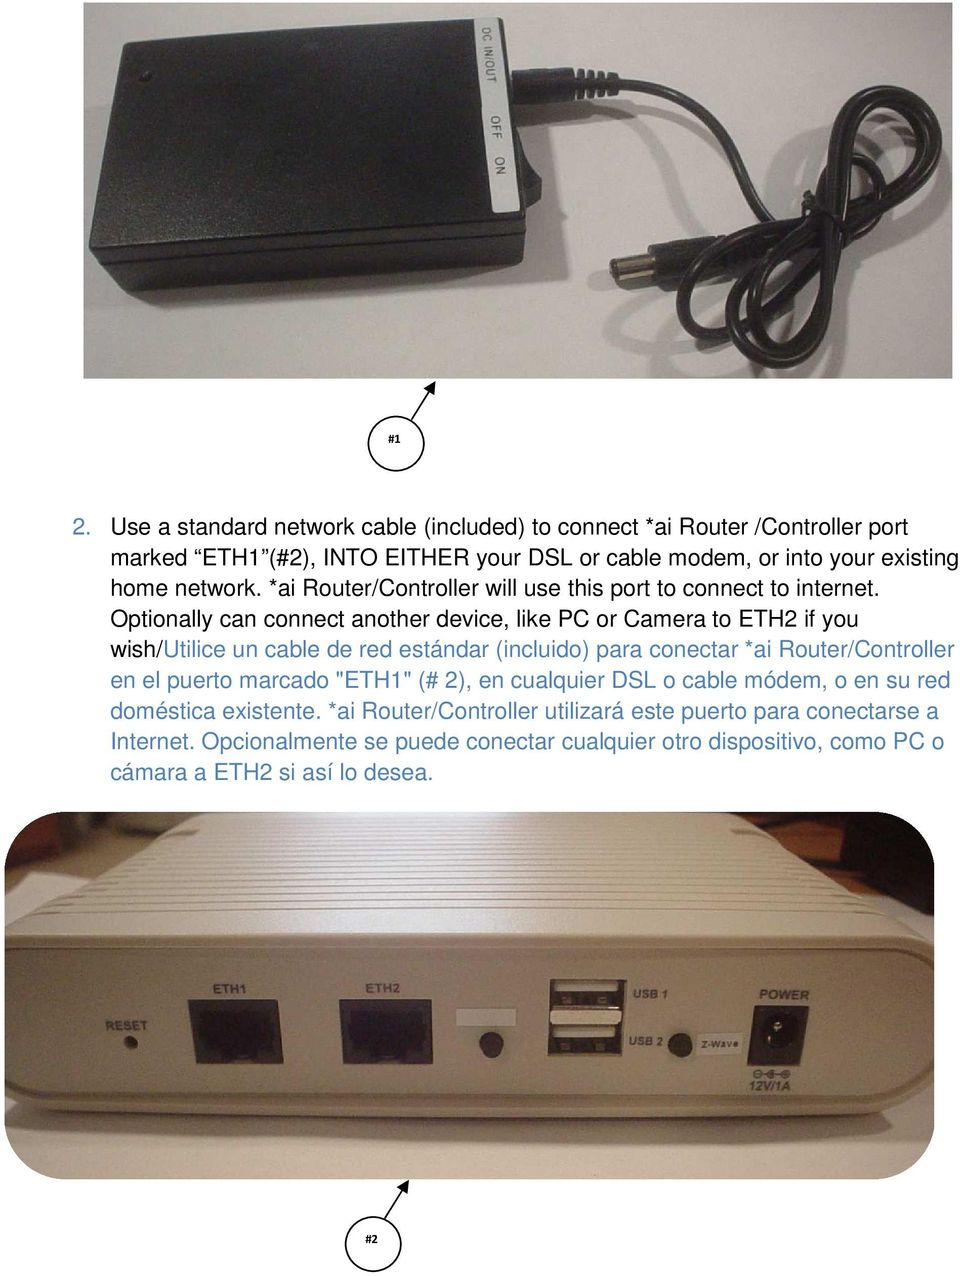 Optionally can connect another device, like PC or Camera to ETH2 if you wish/utilice un cable de red estándar (incluido) para conectar *ai Router/Controller en el